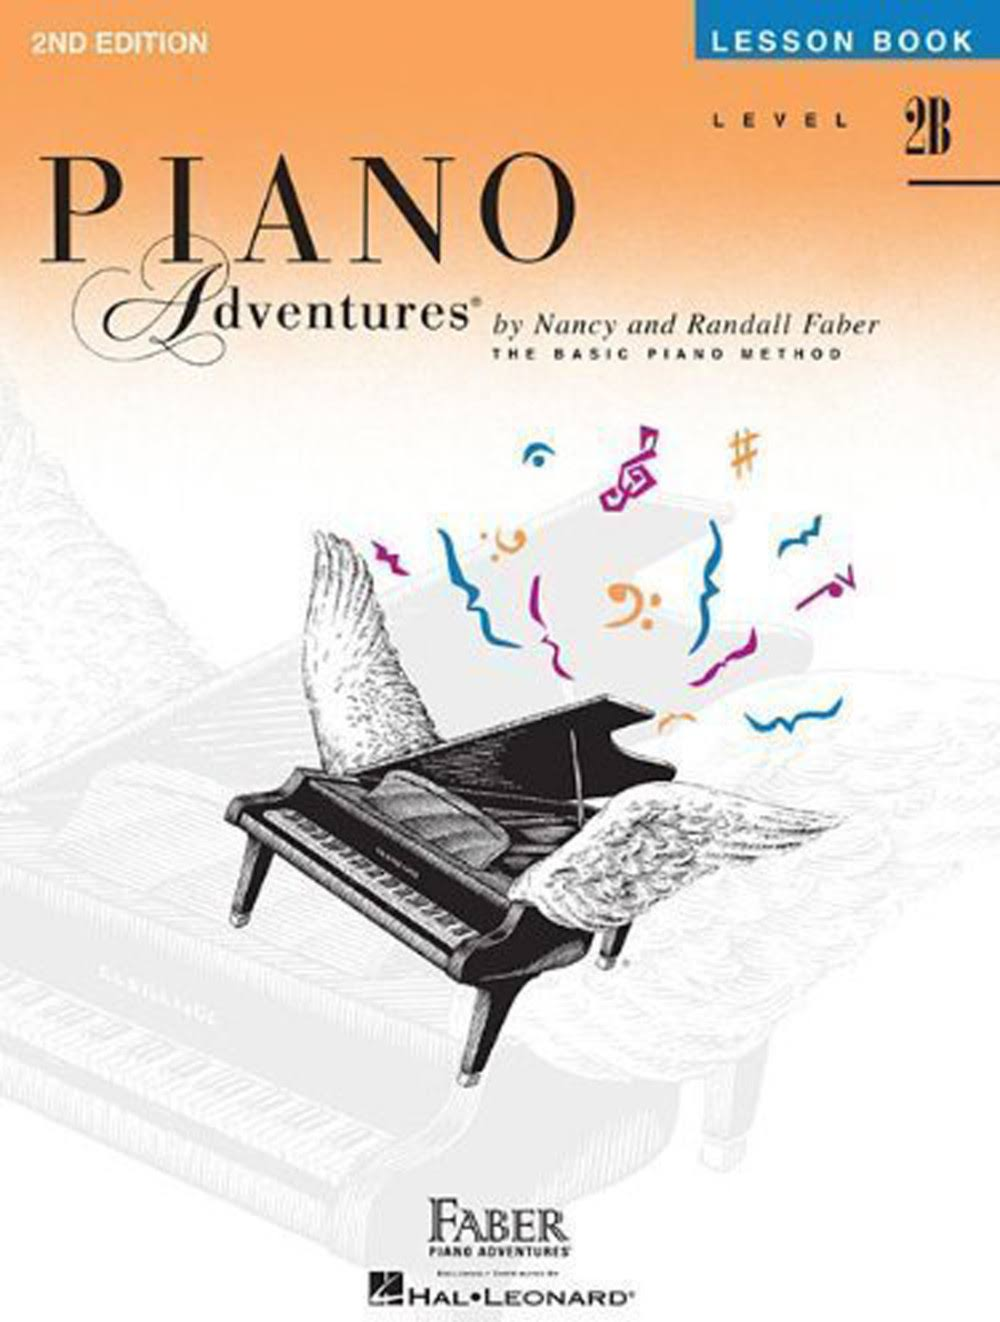 Piano Adventures: Level 2B Lesson Book - Nancy And Randall Faber